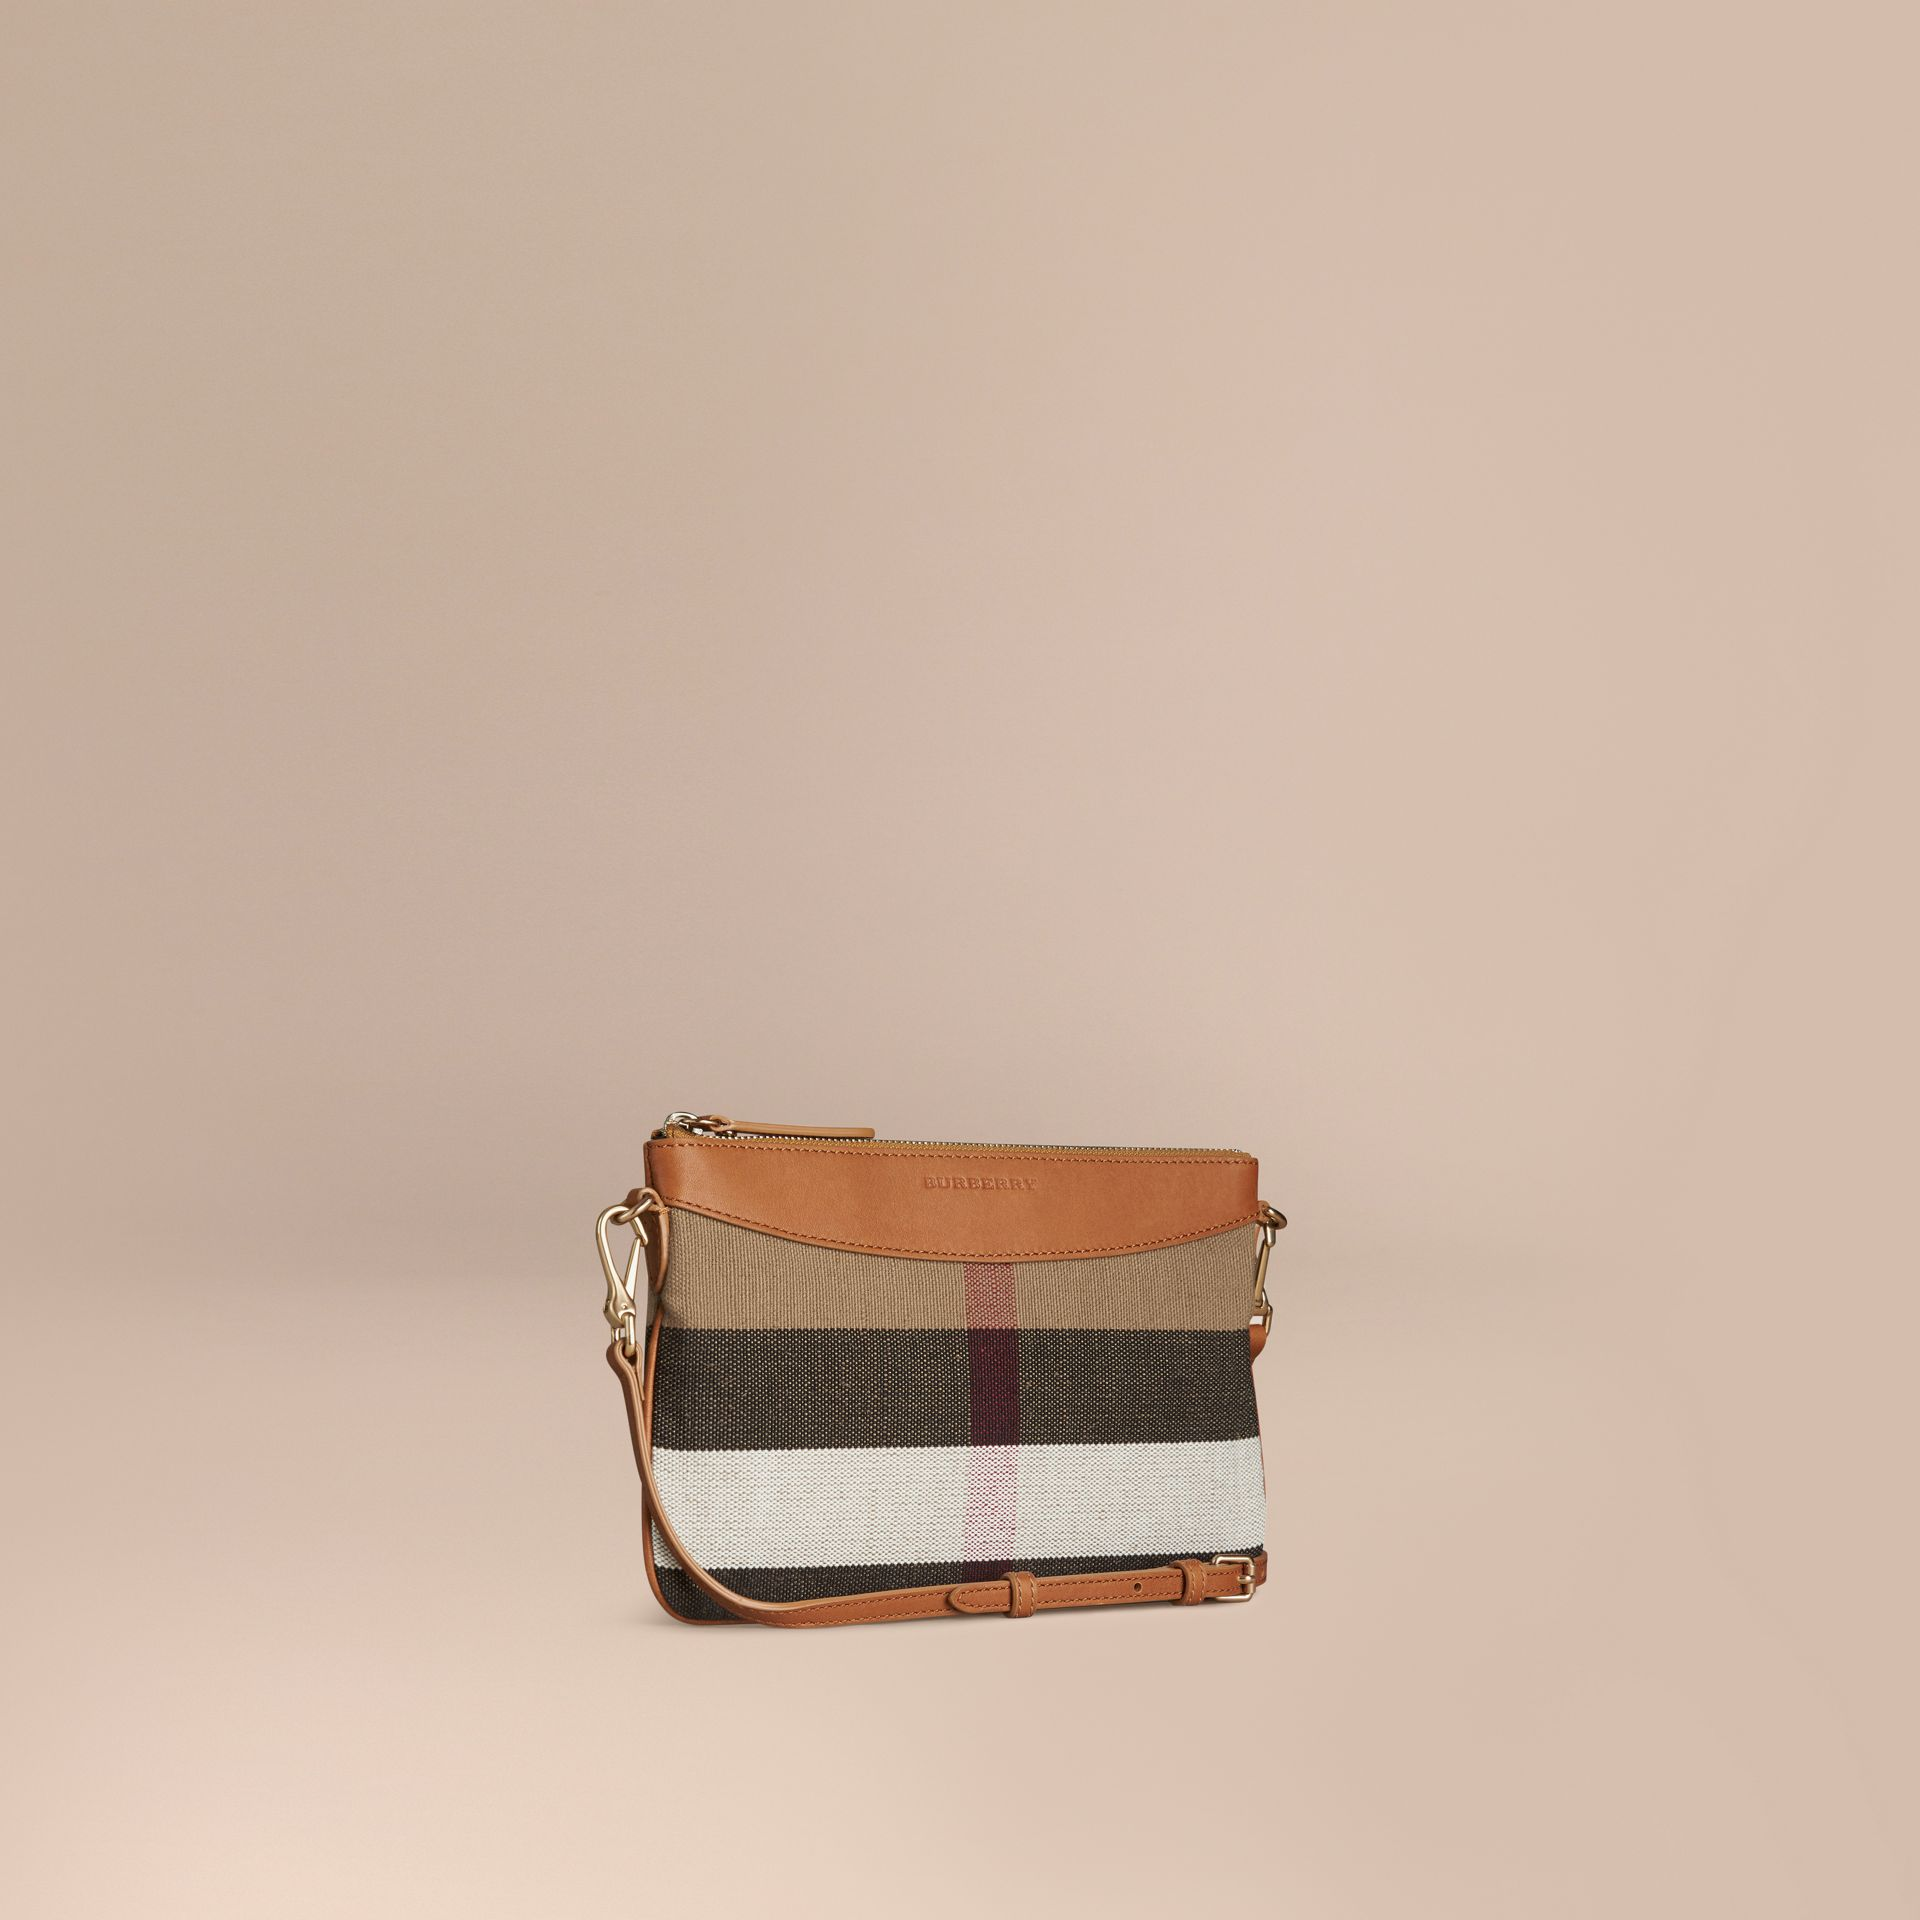 Saddle brown Canvas Check and Leather Clutch Bag Saddle Brown - gallery image 1